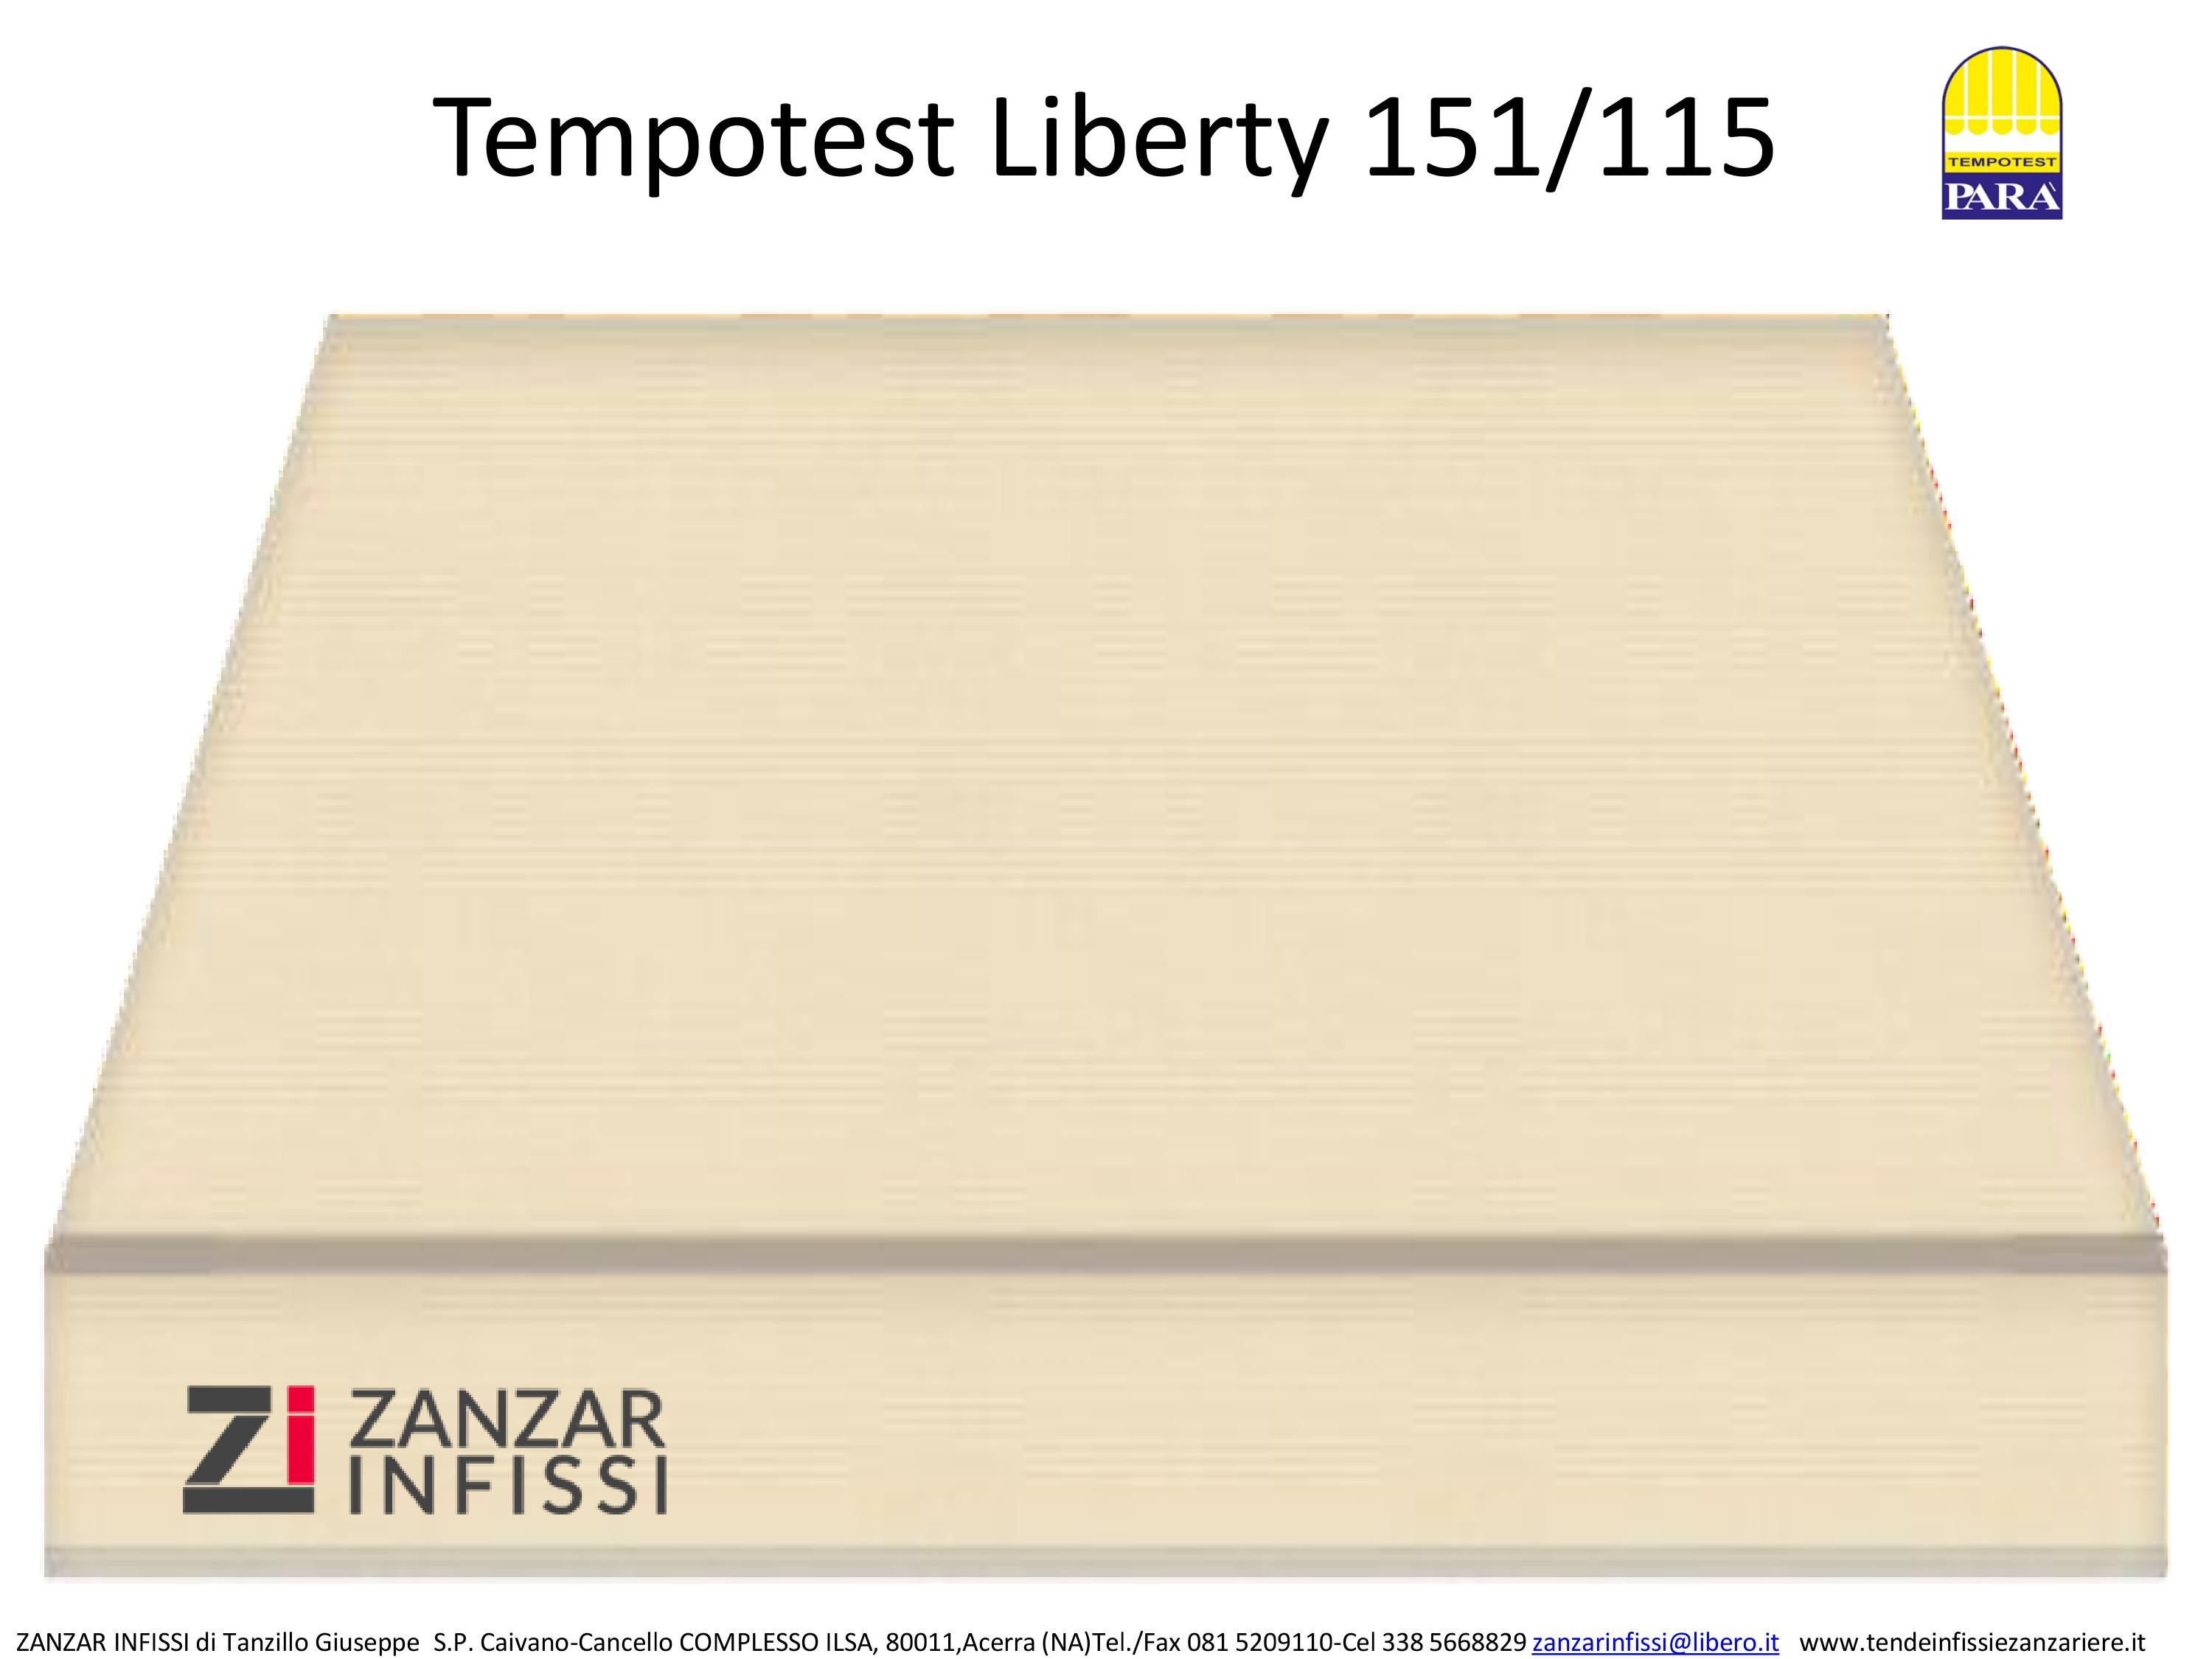 Tempotest Liberty 151/115